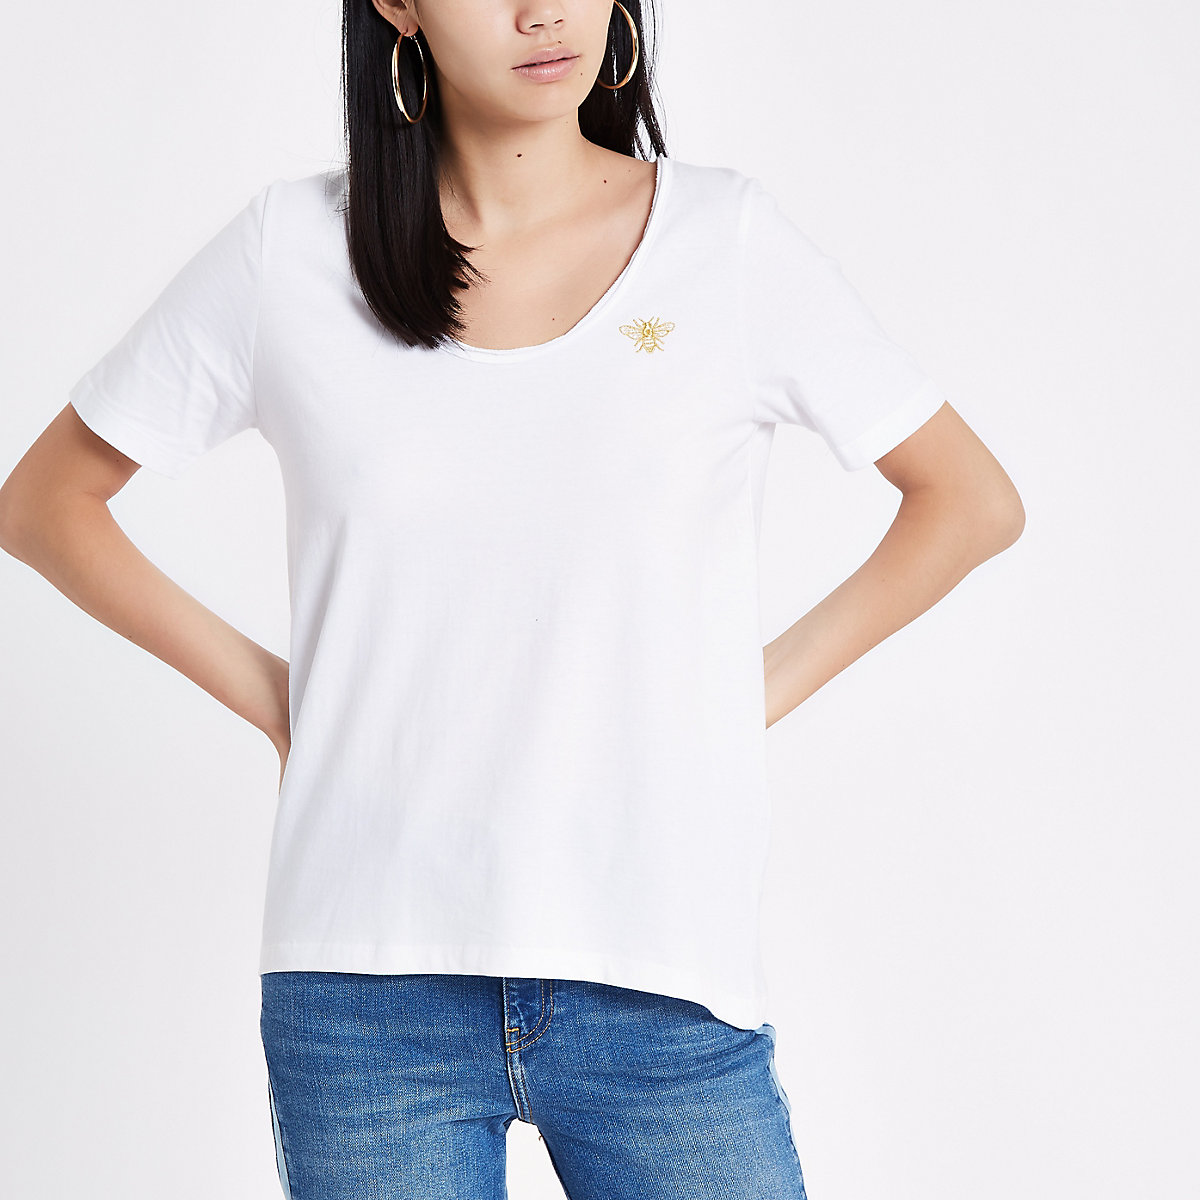 White round scoop neck T-shirt